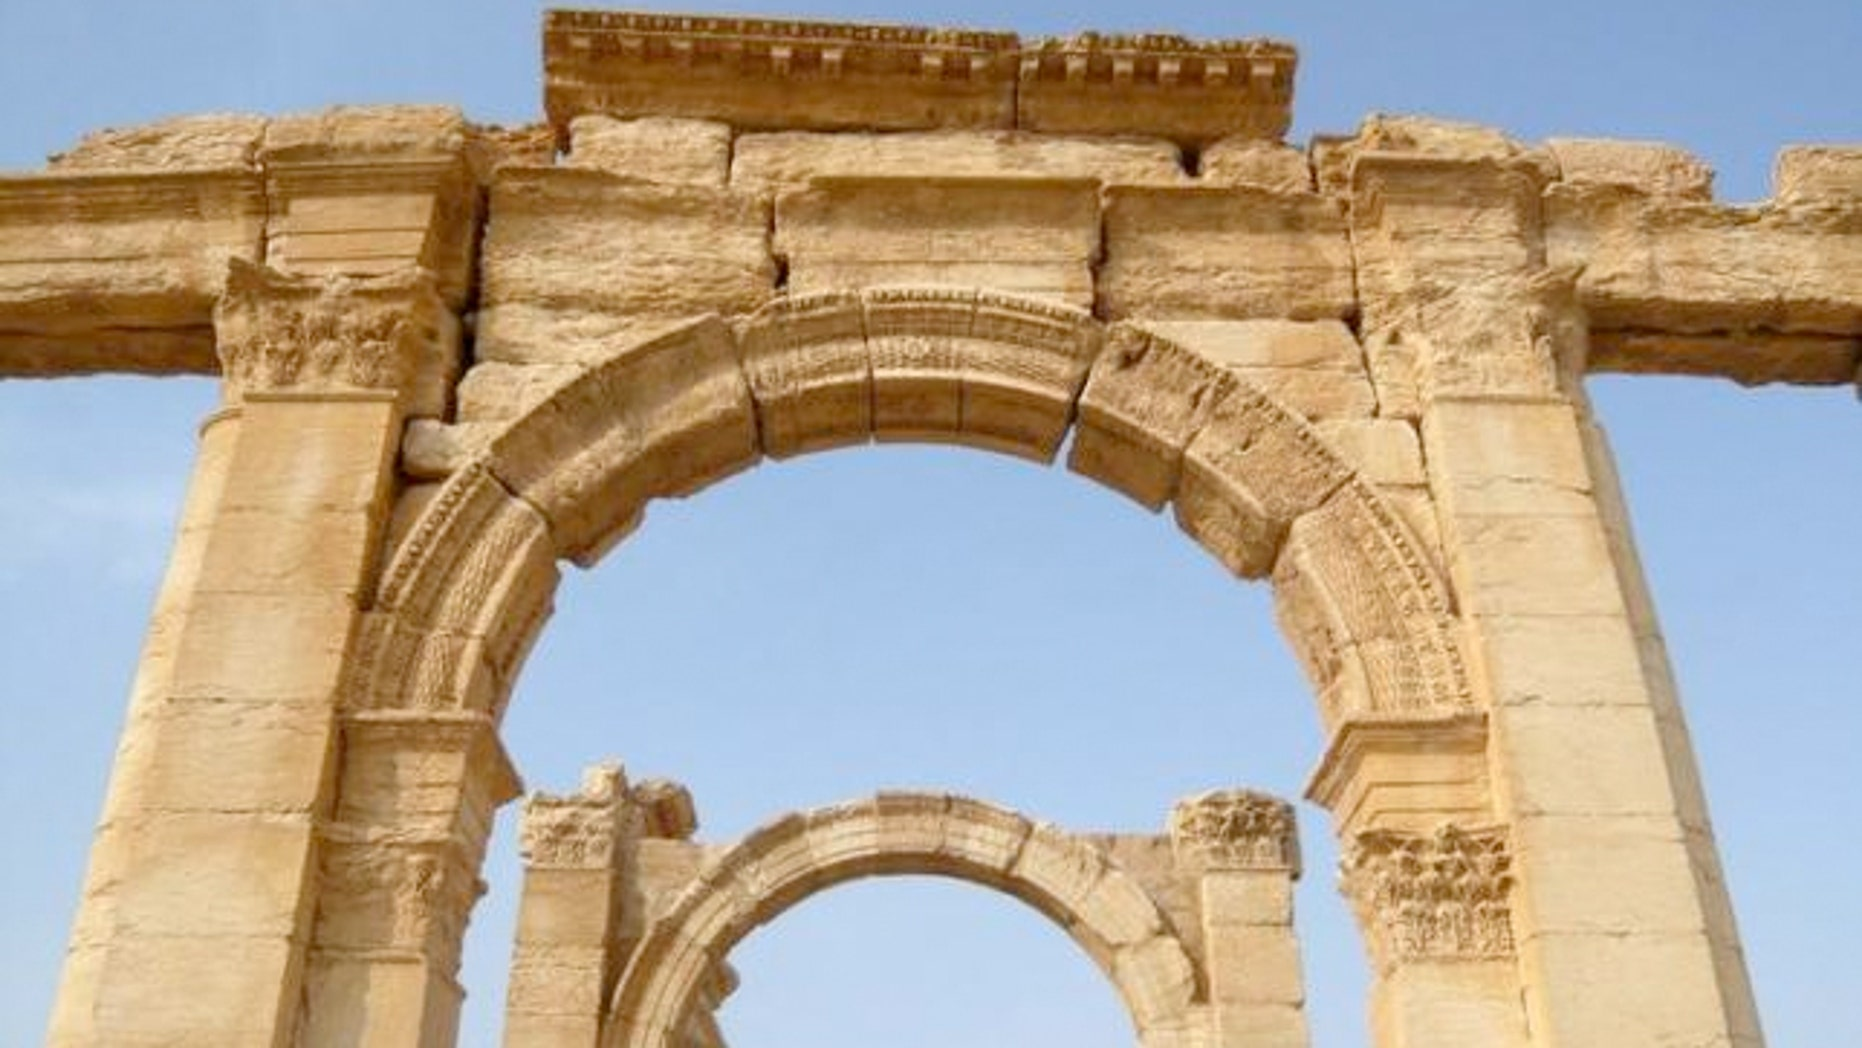 FILE: A view shows the Monumental Arch in the historical city of Palmyra, Syria, August 5, 2010.  In Oct., ISIS blew up the monument, which is in the 2,000-year-old city of Palmyra.